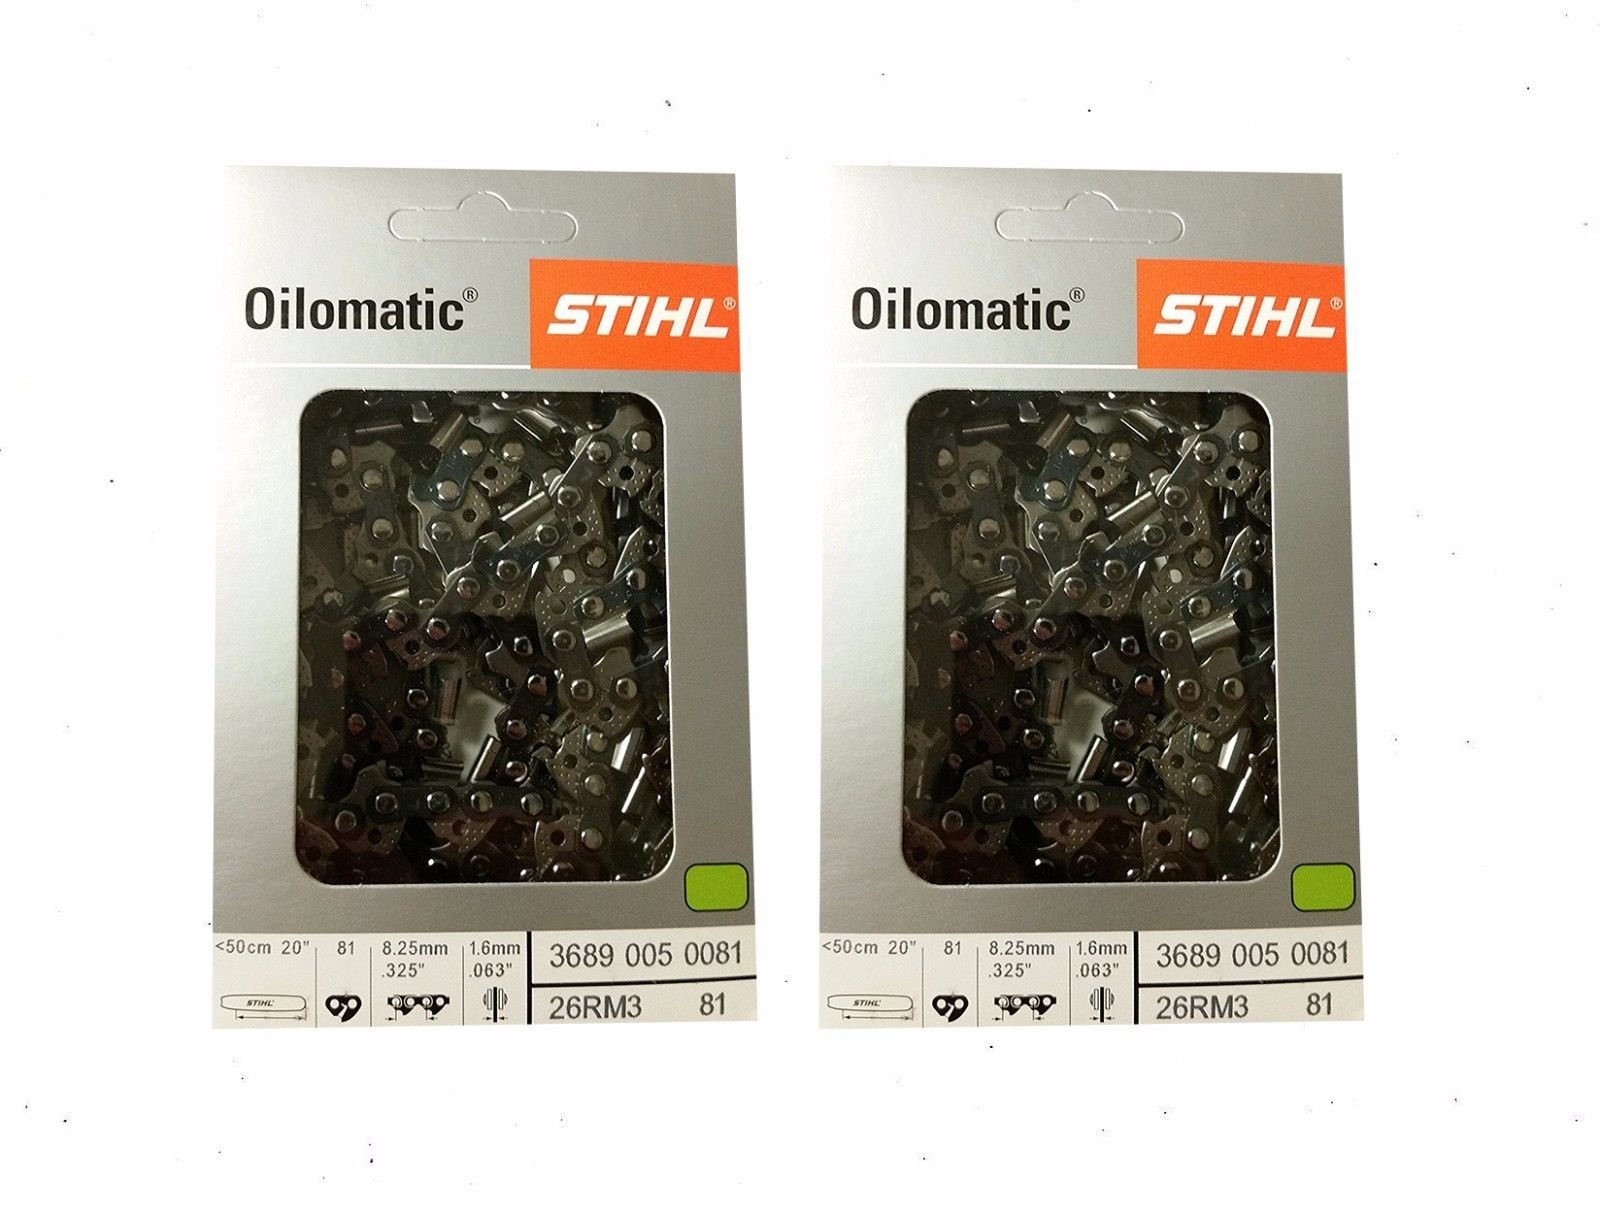 STIHL 26RM3-81 Oilomatic Rapid Micro 3 Saw Chain, 20'' - 2 Pack by Stihl